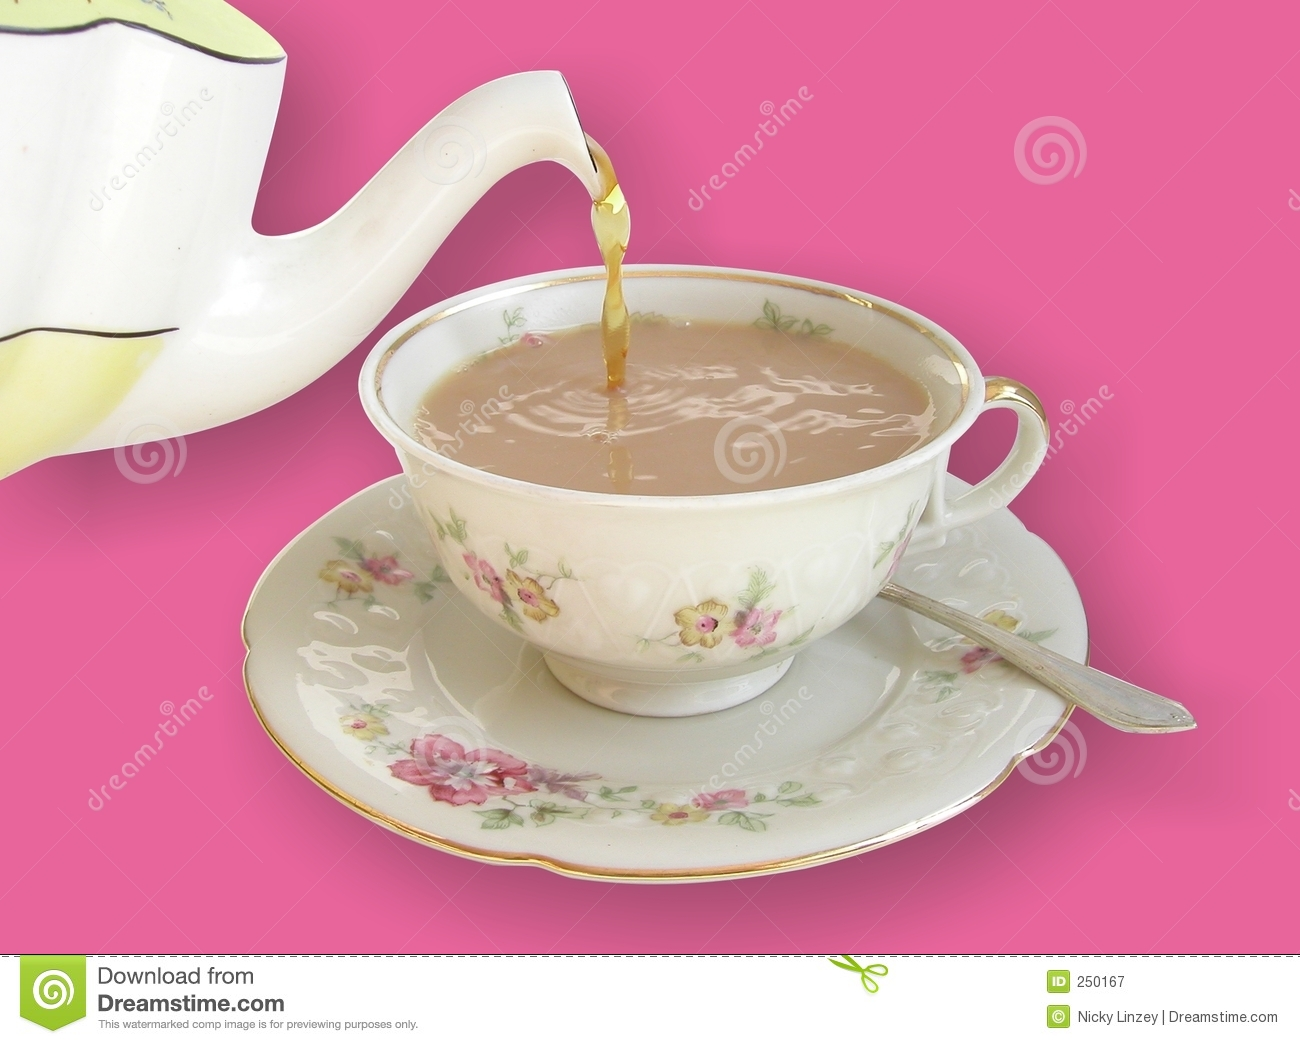 Chinese Tea Clipart Pouring Tea Royalty Free Stock